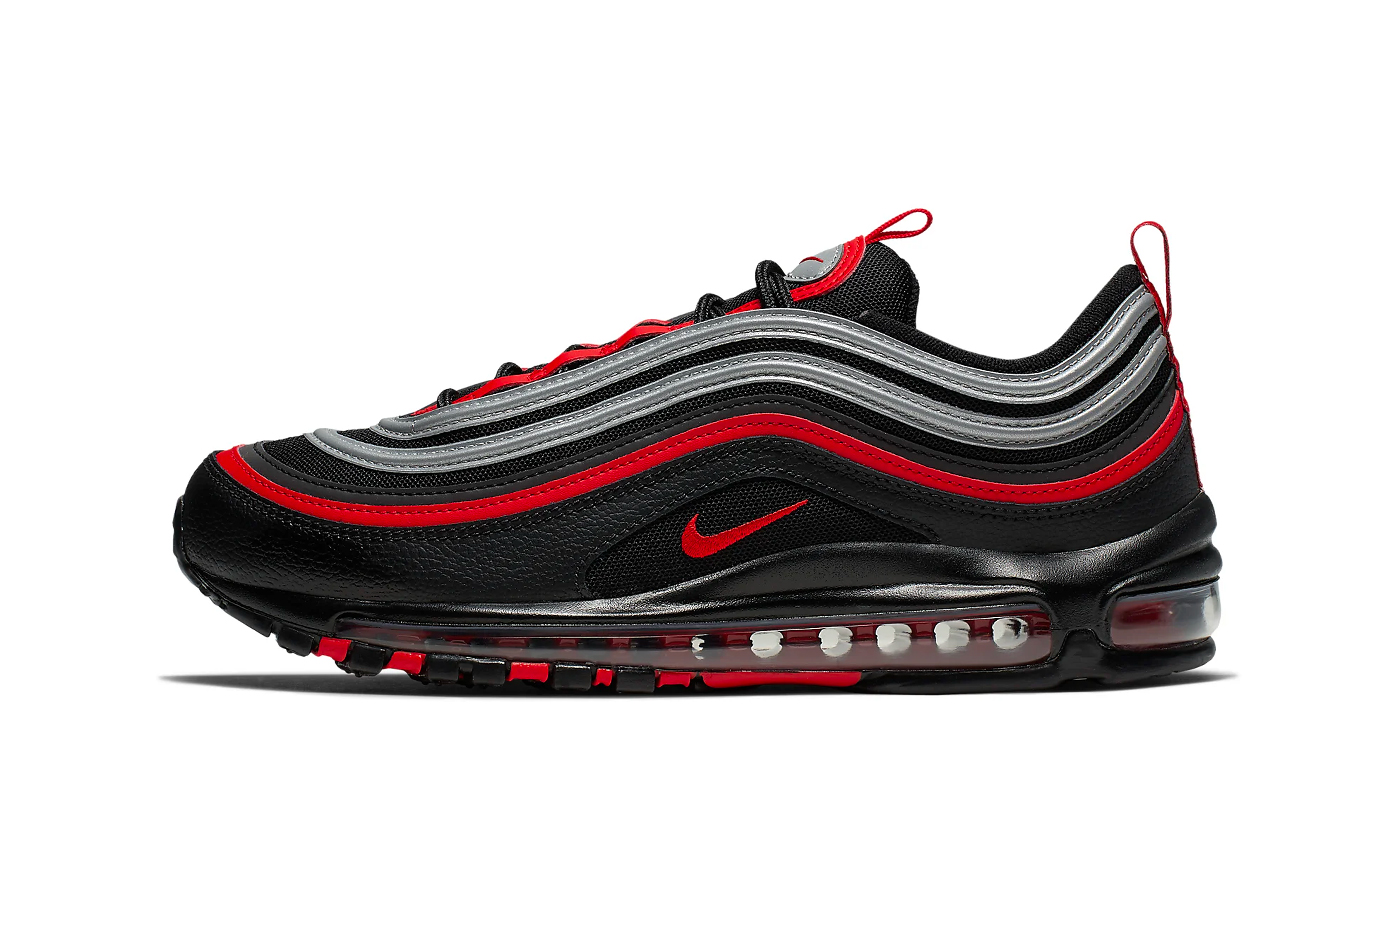 Nike Air Max 97 Bred Metallic Silver Release black university red beaverton sneakers shoes cushioning